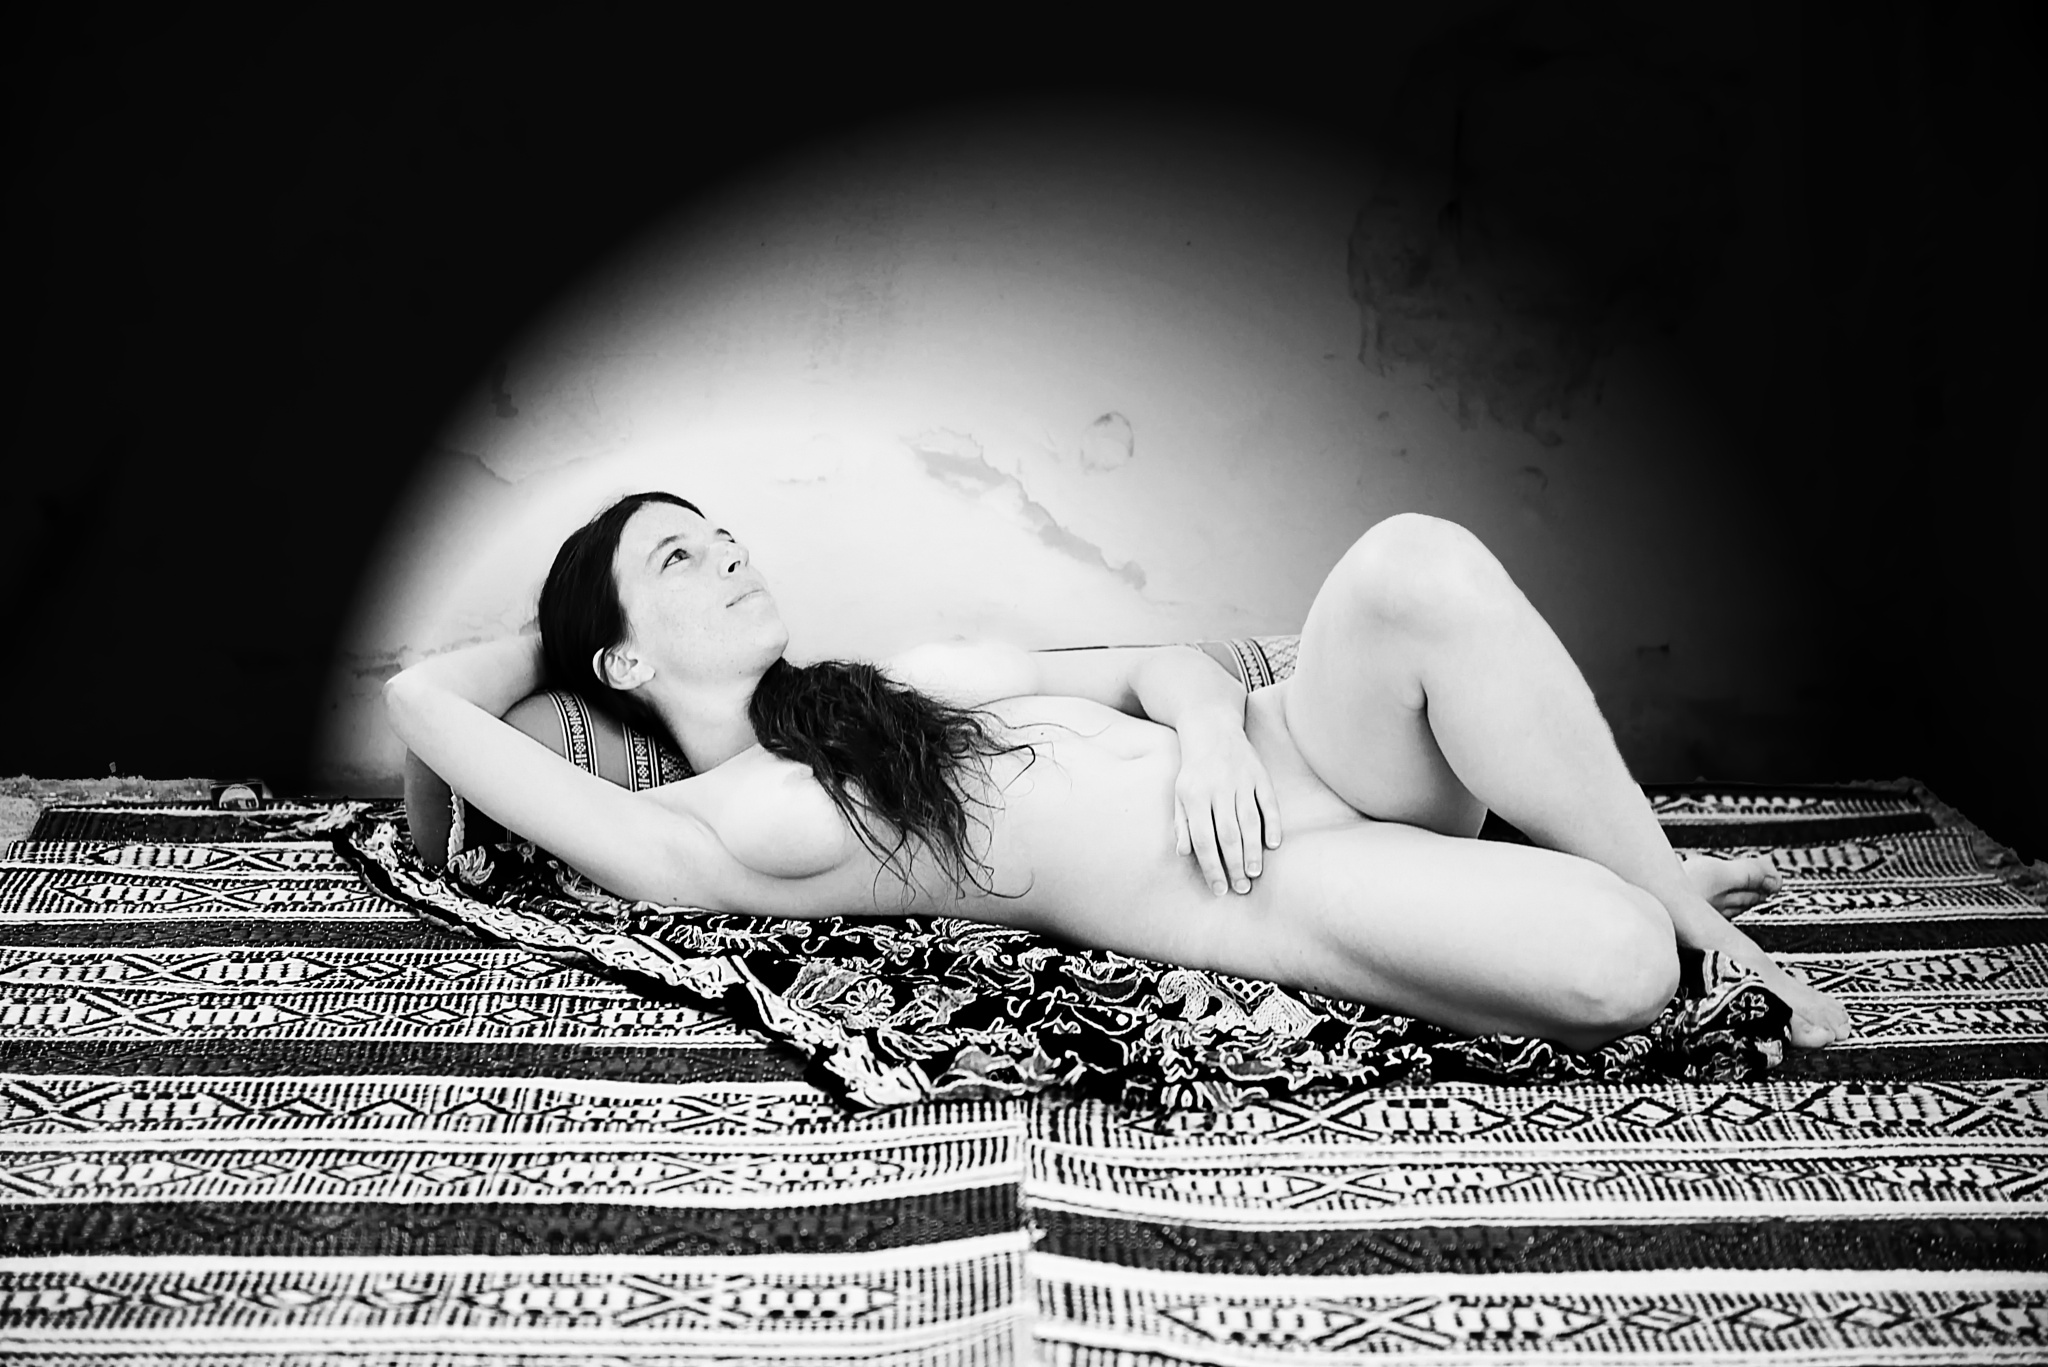 In the Spotlight by Moti fine art nude photography